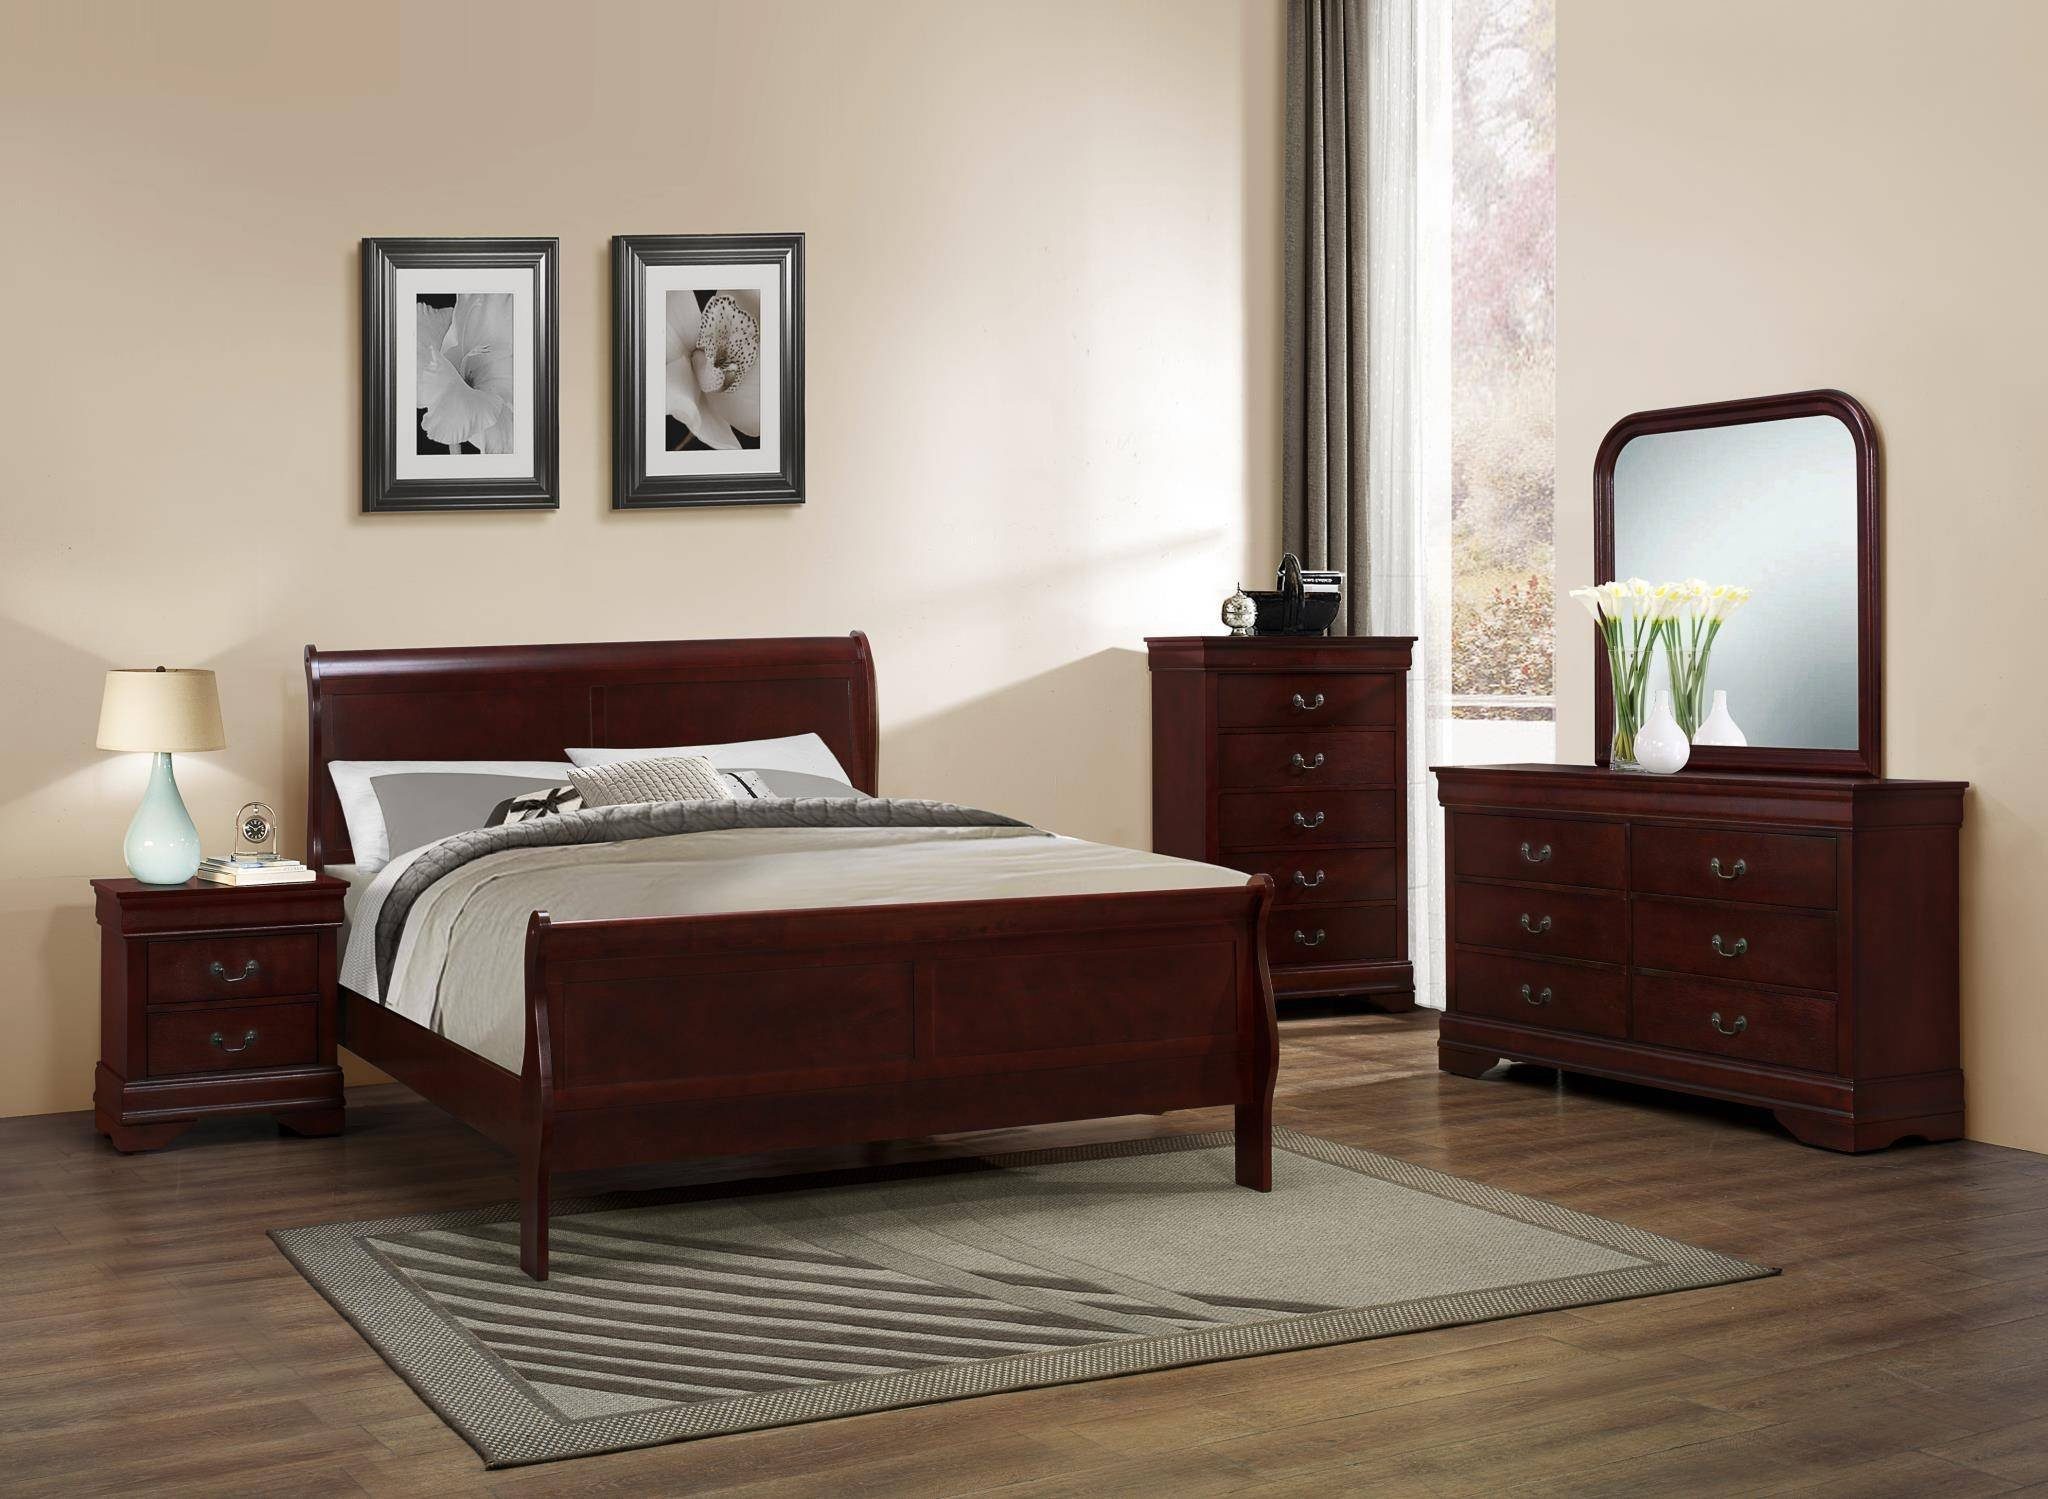 Louis Philippe Bedroom Set Elegant Myco Furniture Lp102k Louis Philippe Cherry Finish solid Hardwoods King Bed Set 5pcs Classic